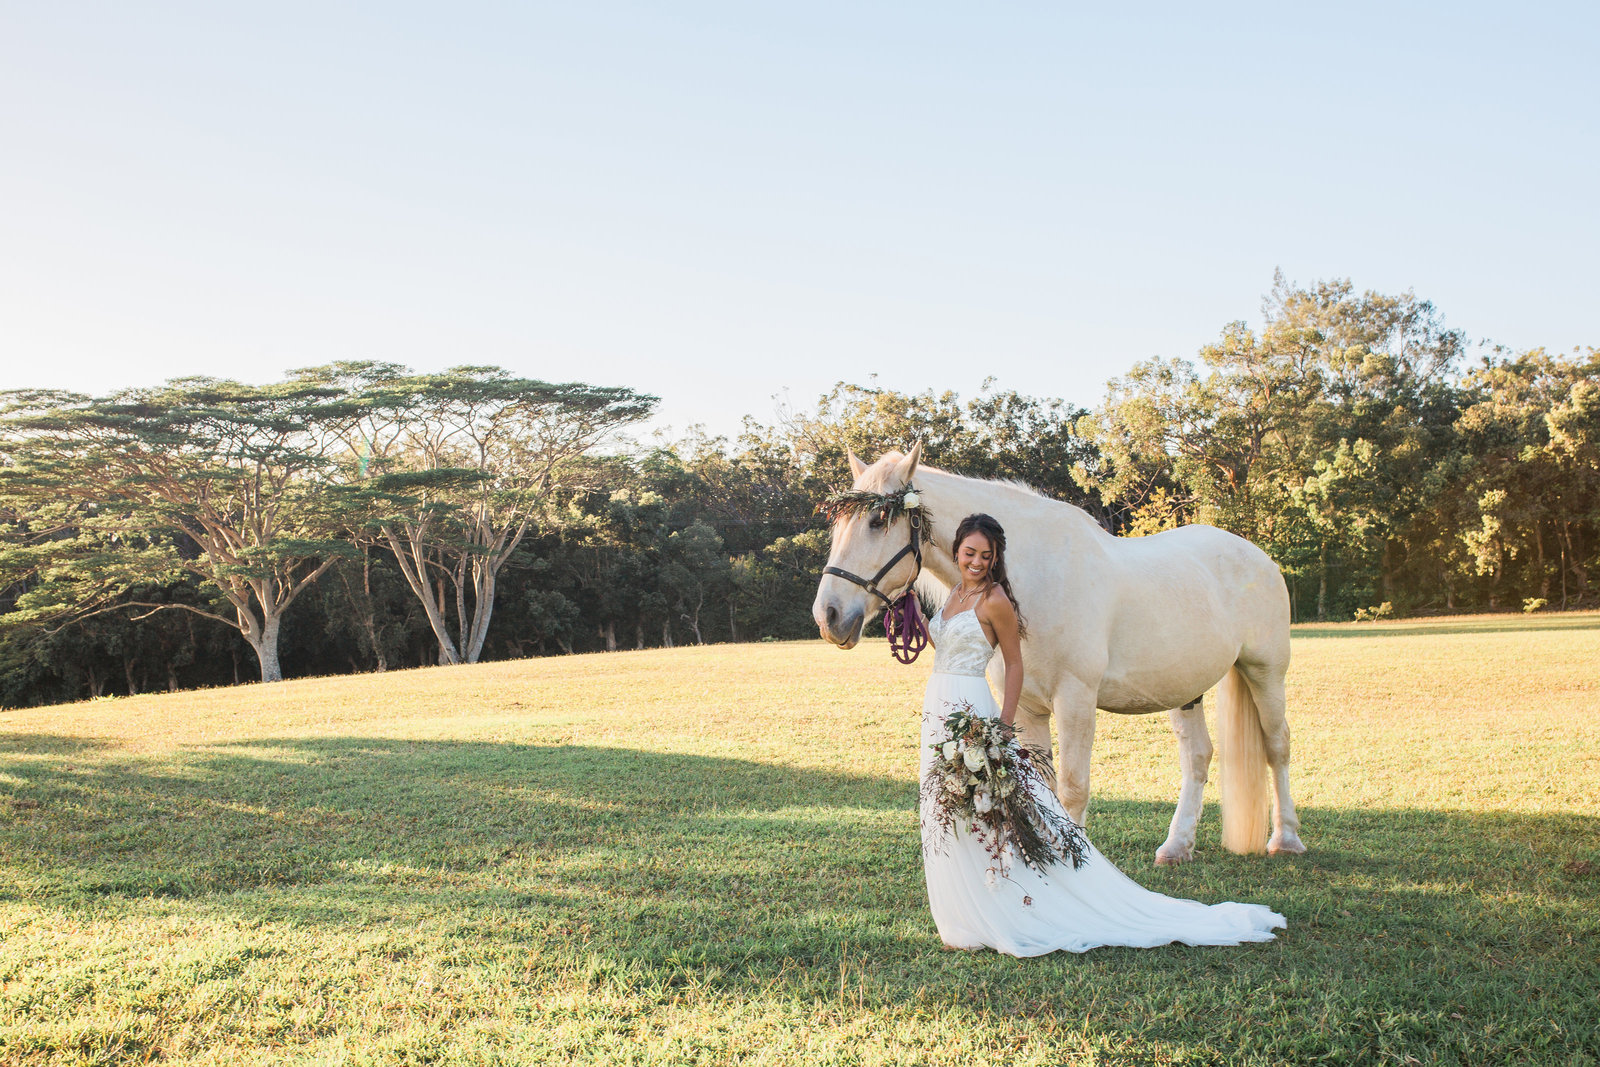 bride with horse at sunset ranch